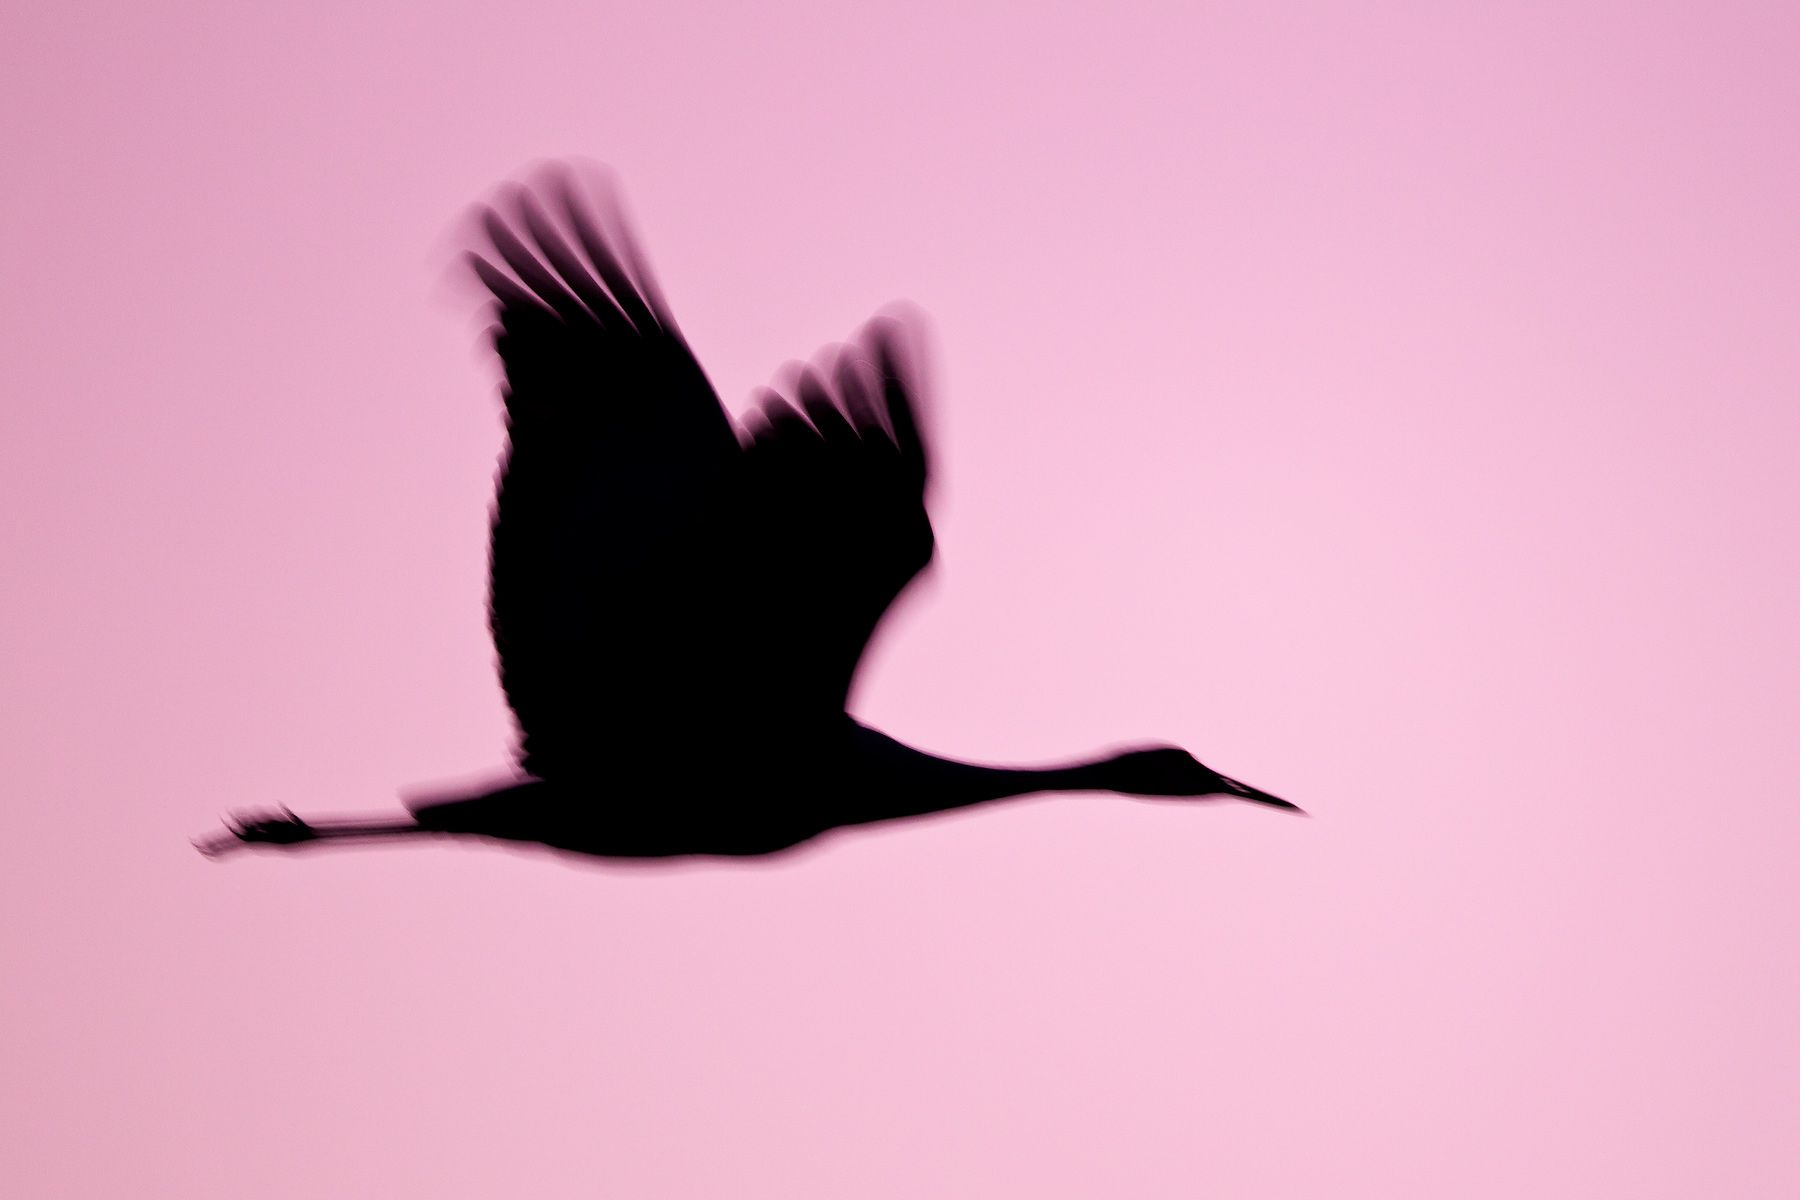 Sand-hill-crane-silhouette-against-purple-sky-23100635-Bosque-del-Apache-NWR,-San-Antonio,-NM.jpg